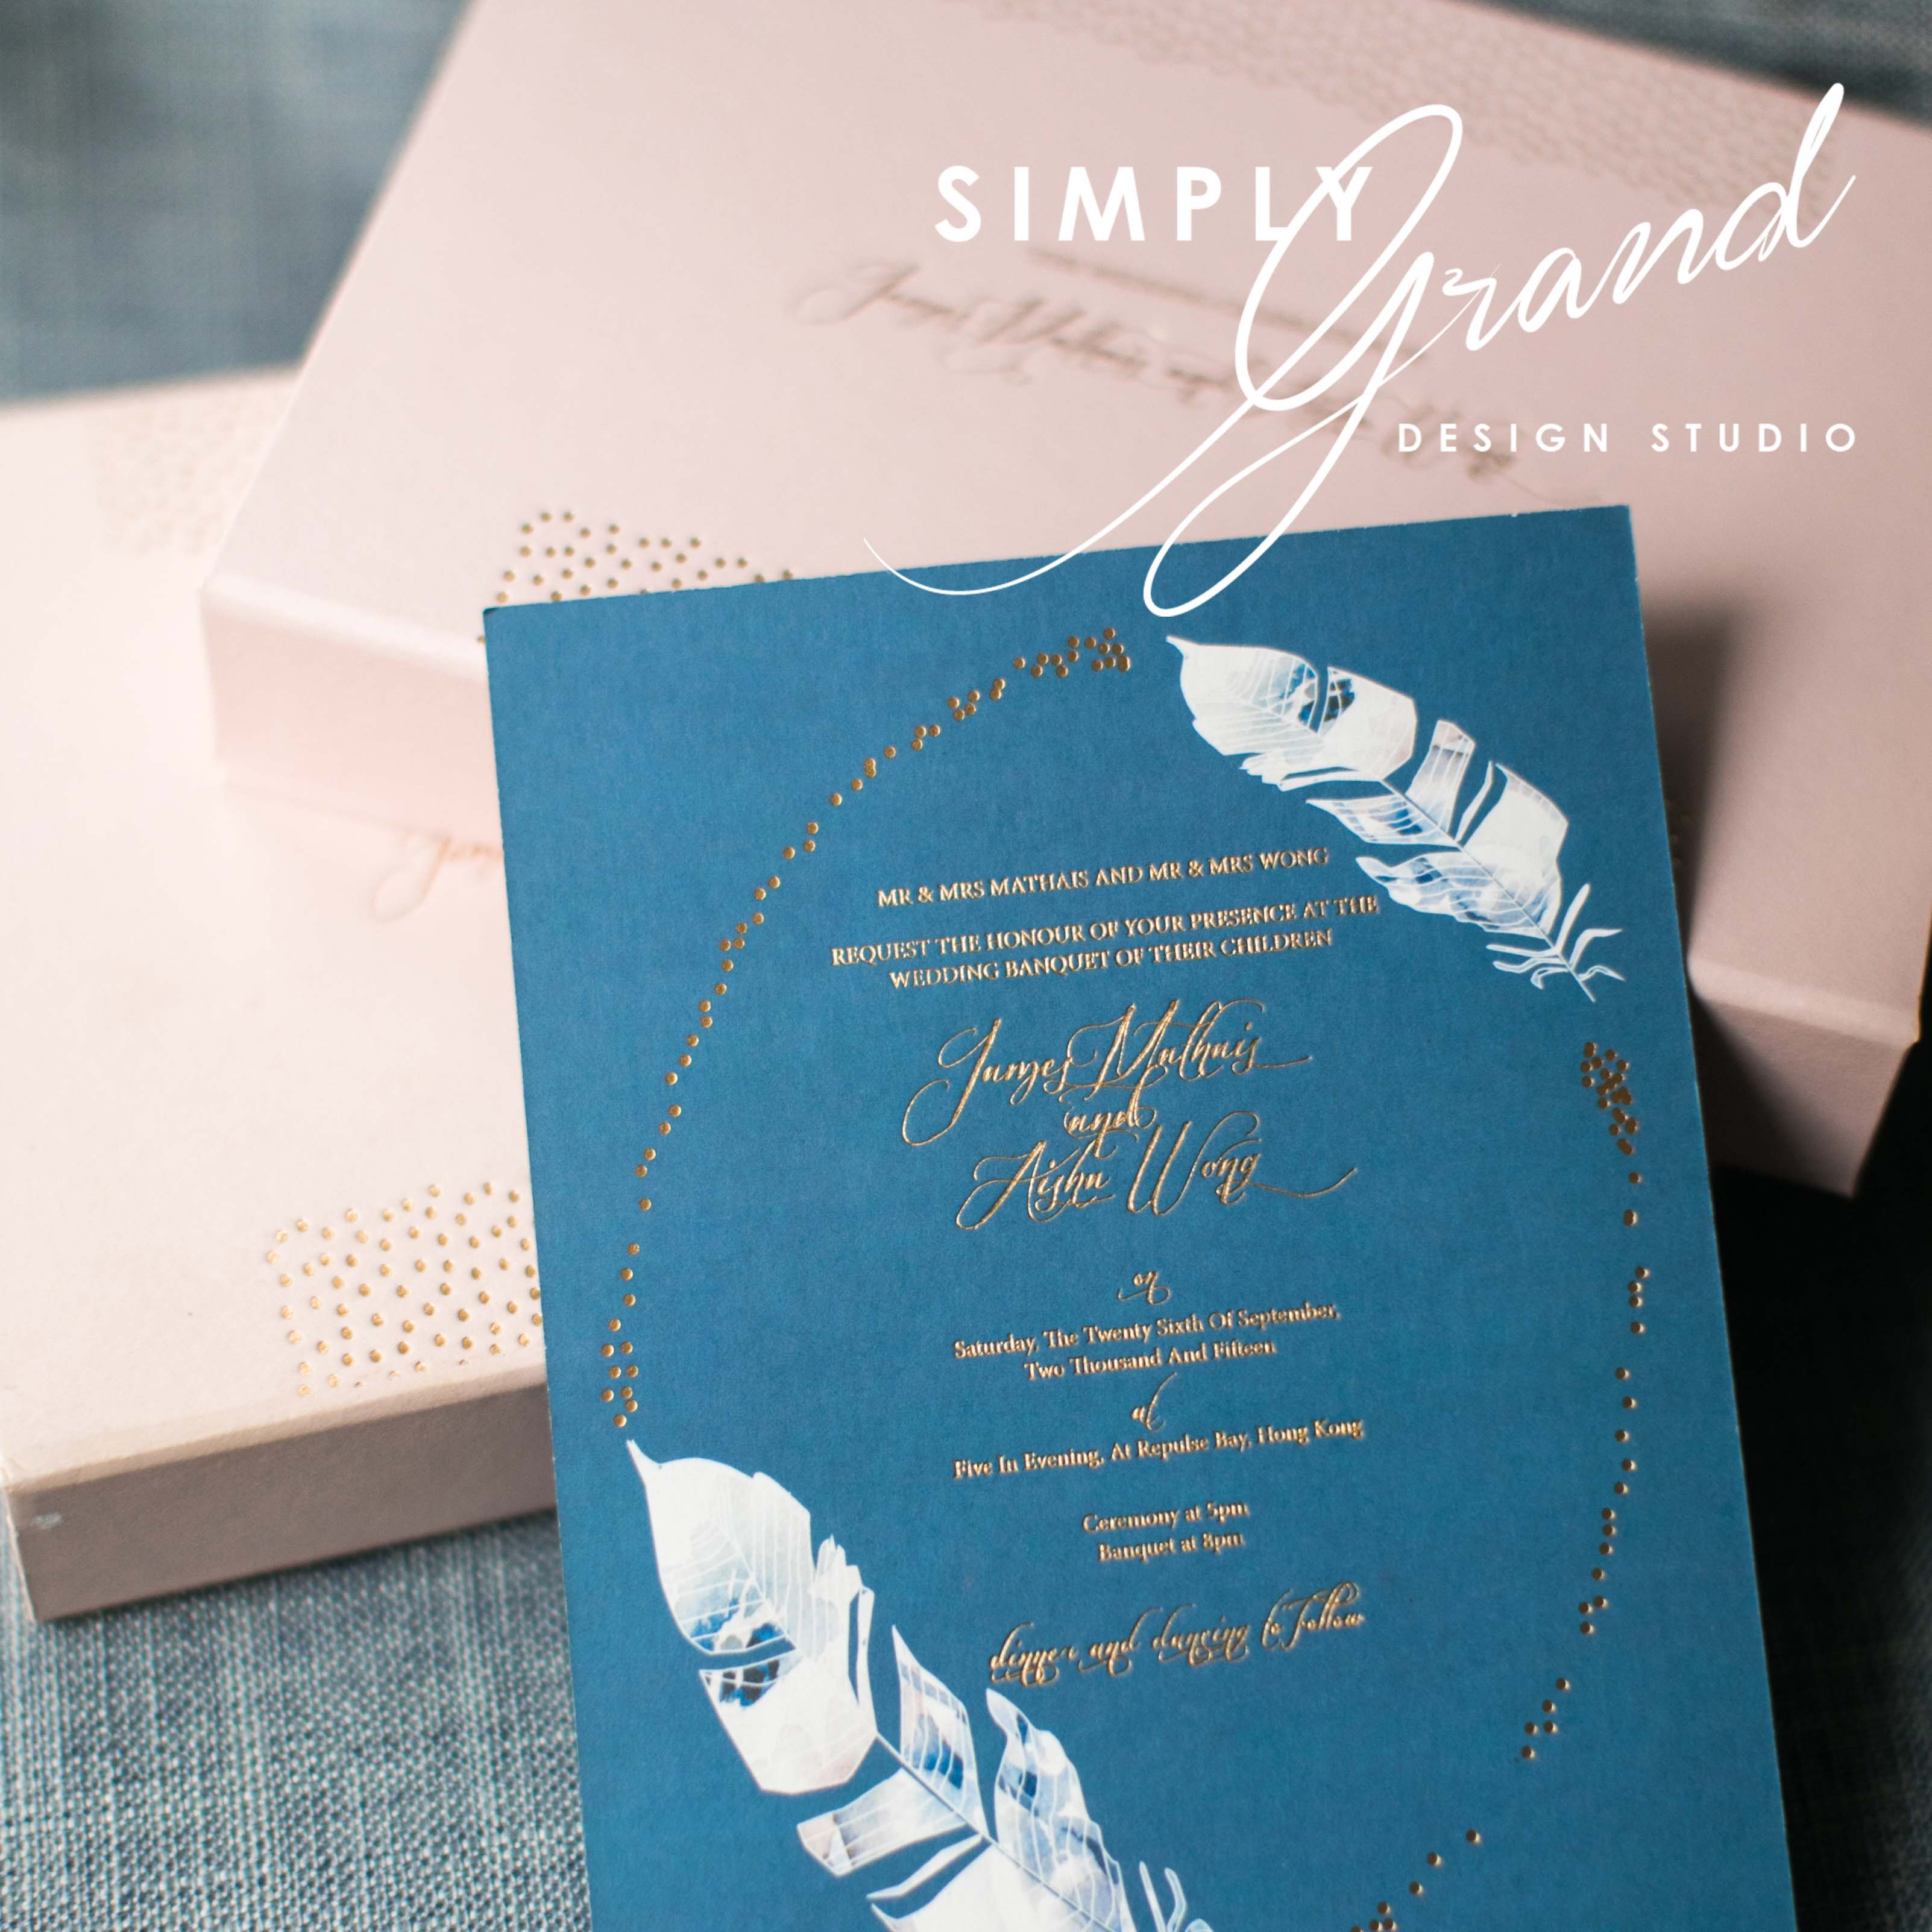 Simply_Grand_Production_Stationery_Invitation_Card_1_3